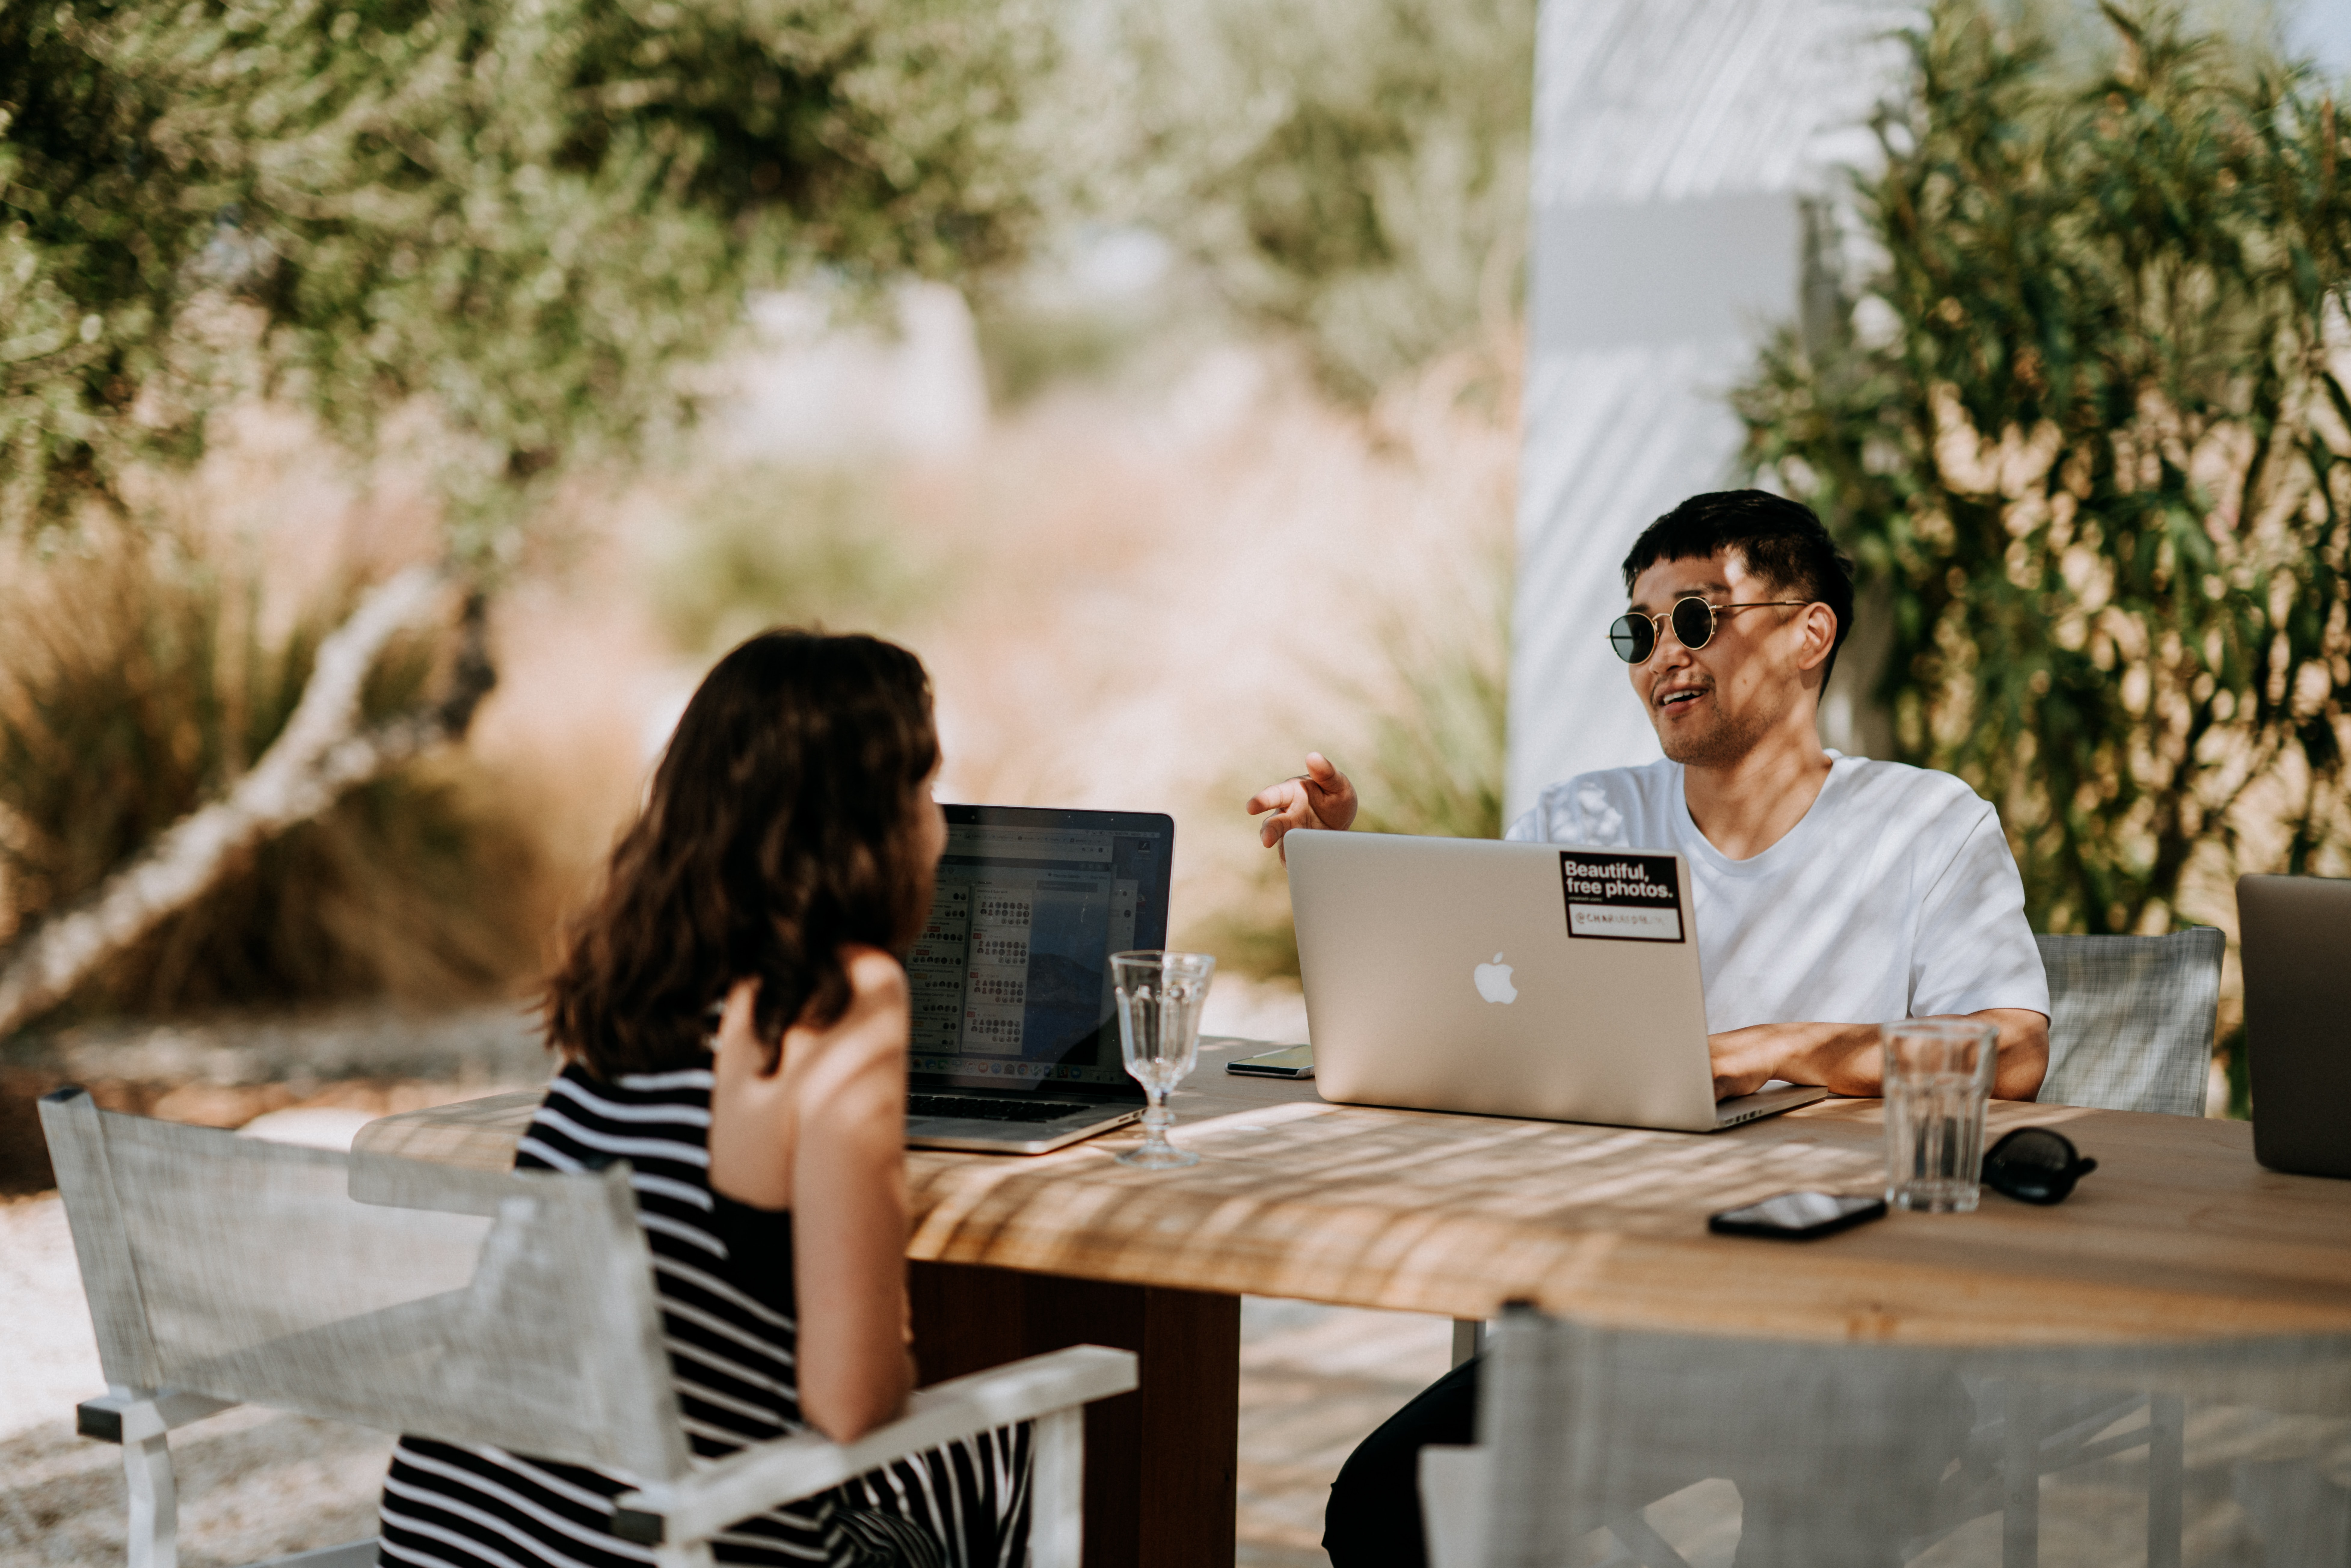 4 Unfair Advantages of Hiring With A TaaS (Talent-as-a-Service) Company